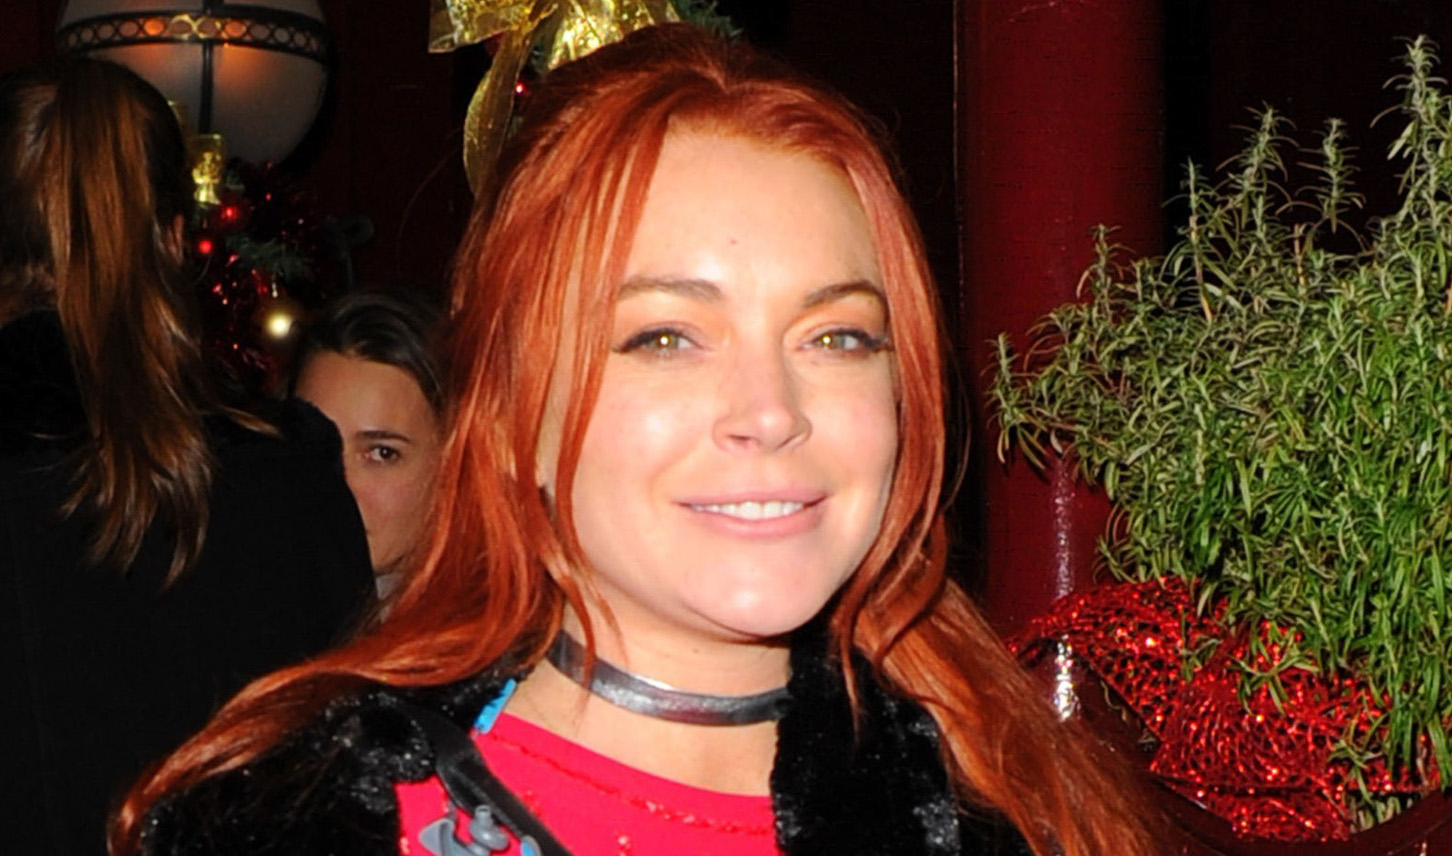 Lindsay Lohan Shares Her Support For Trump